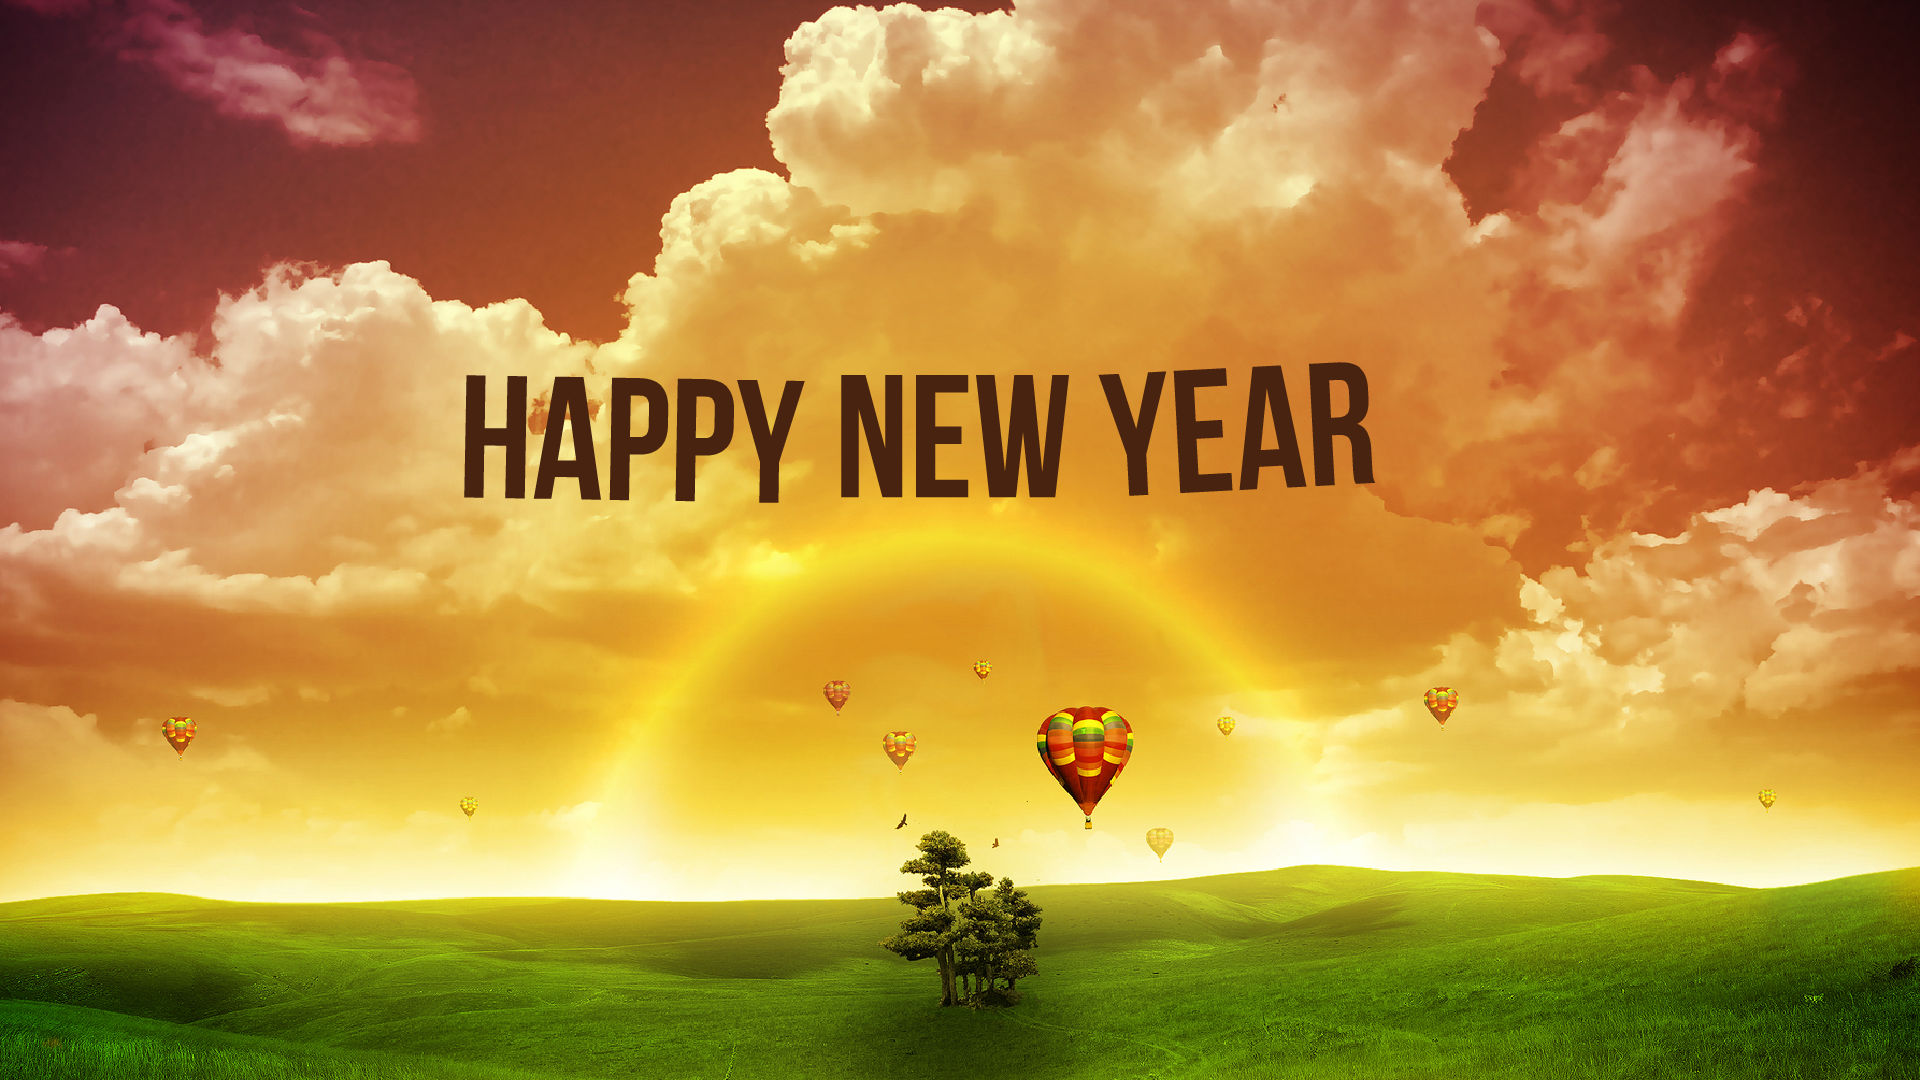 Happy New Year 2016 Wallpapers  Best Wallpapers